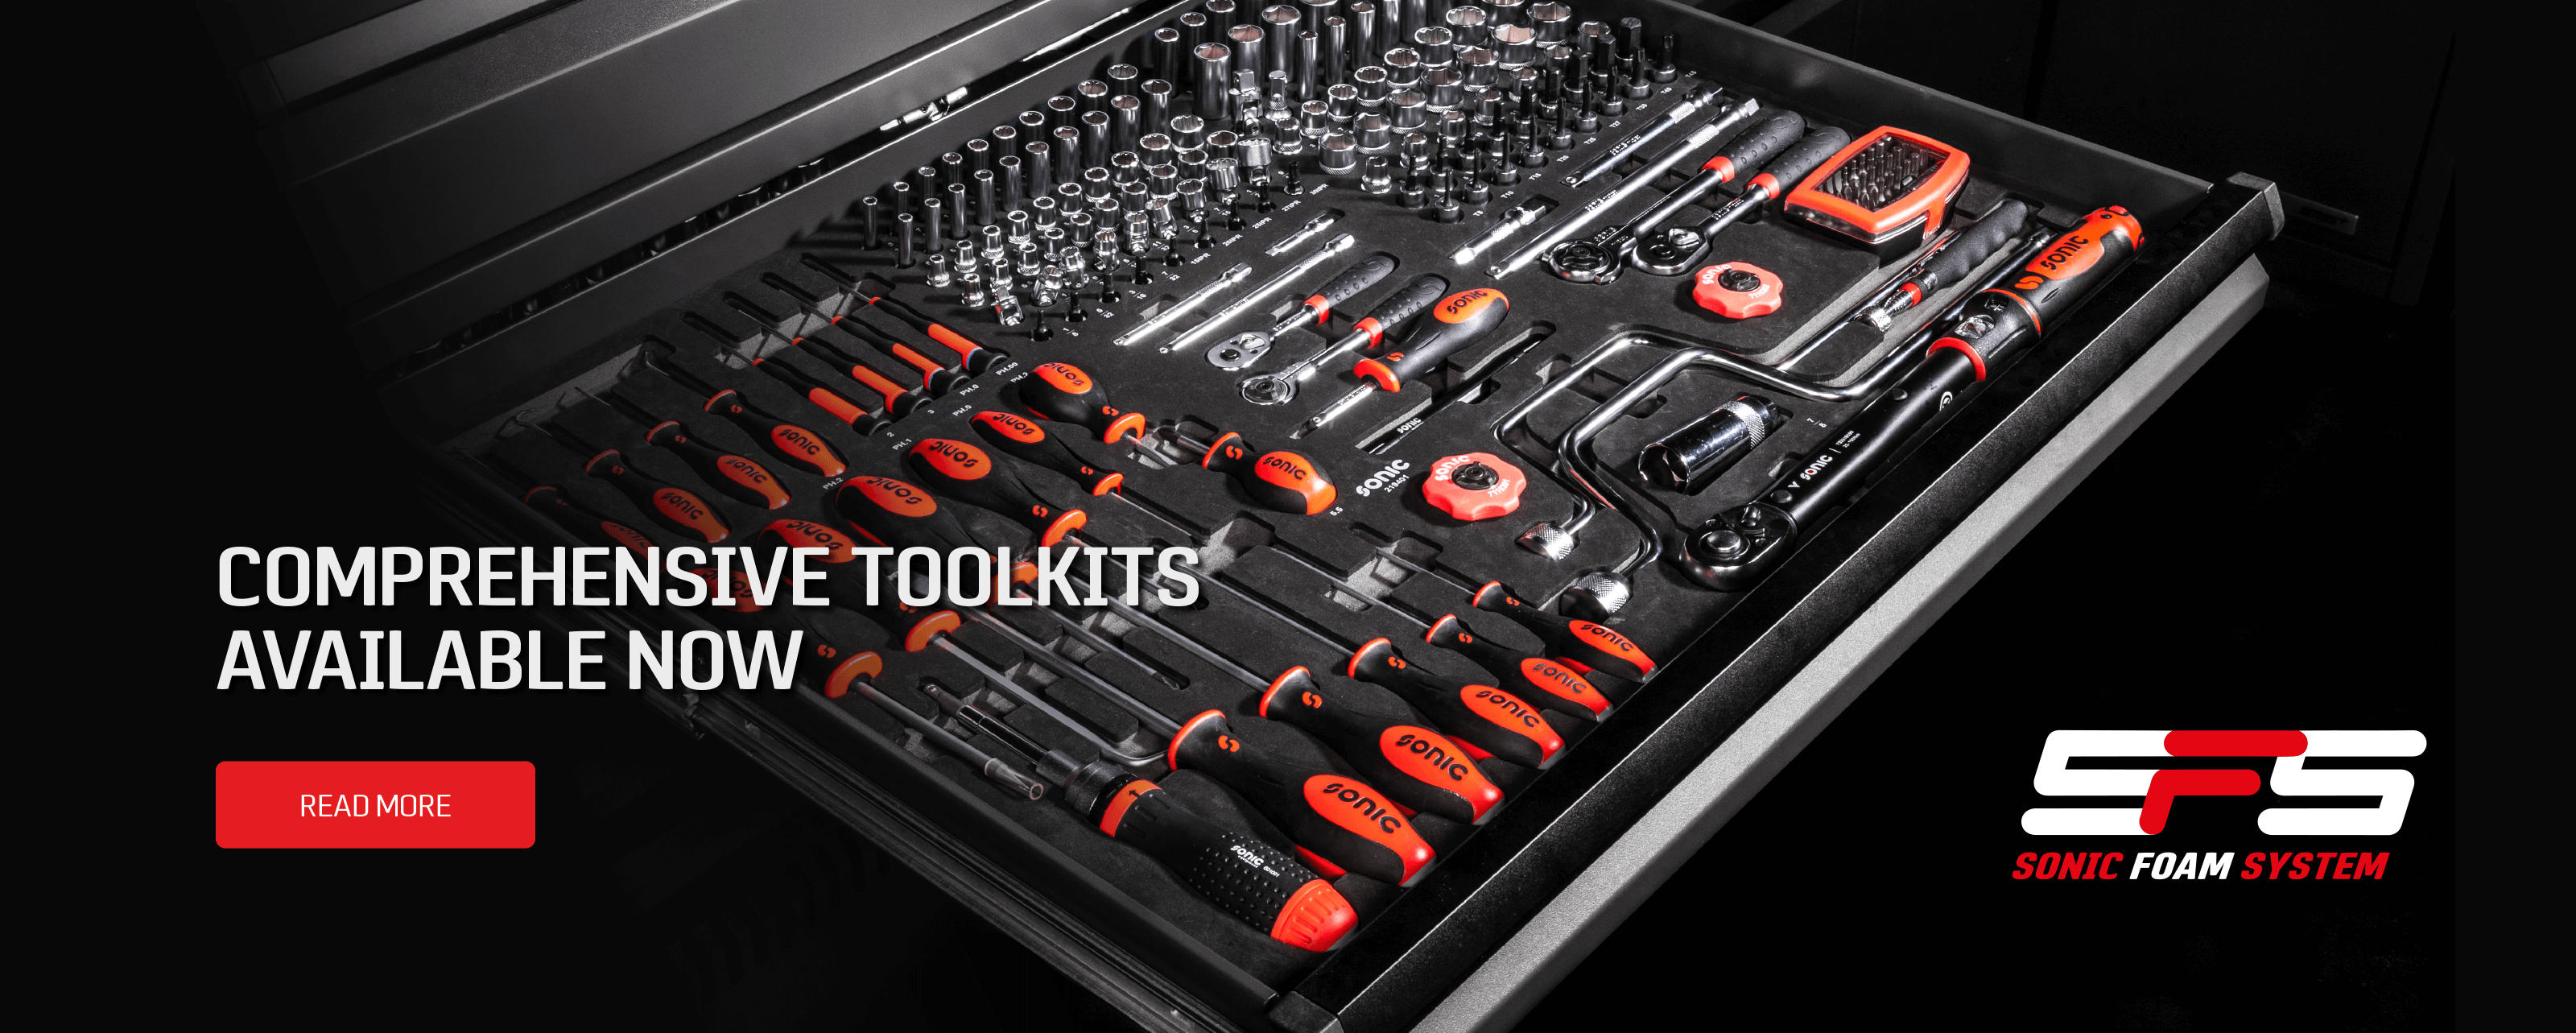 Shop comprehensive toolkits now